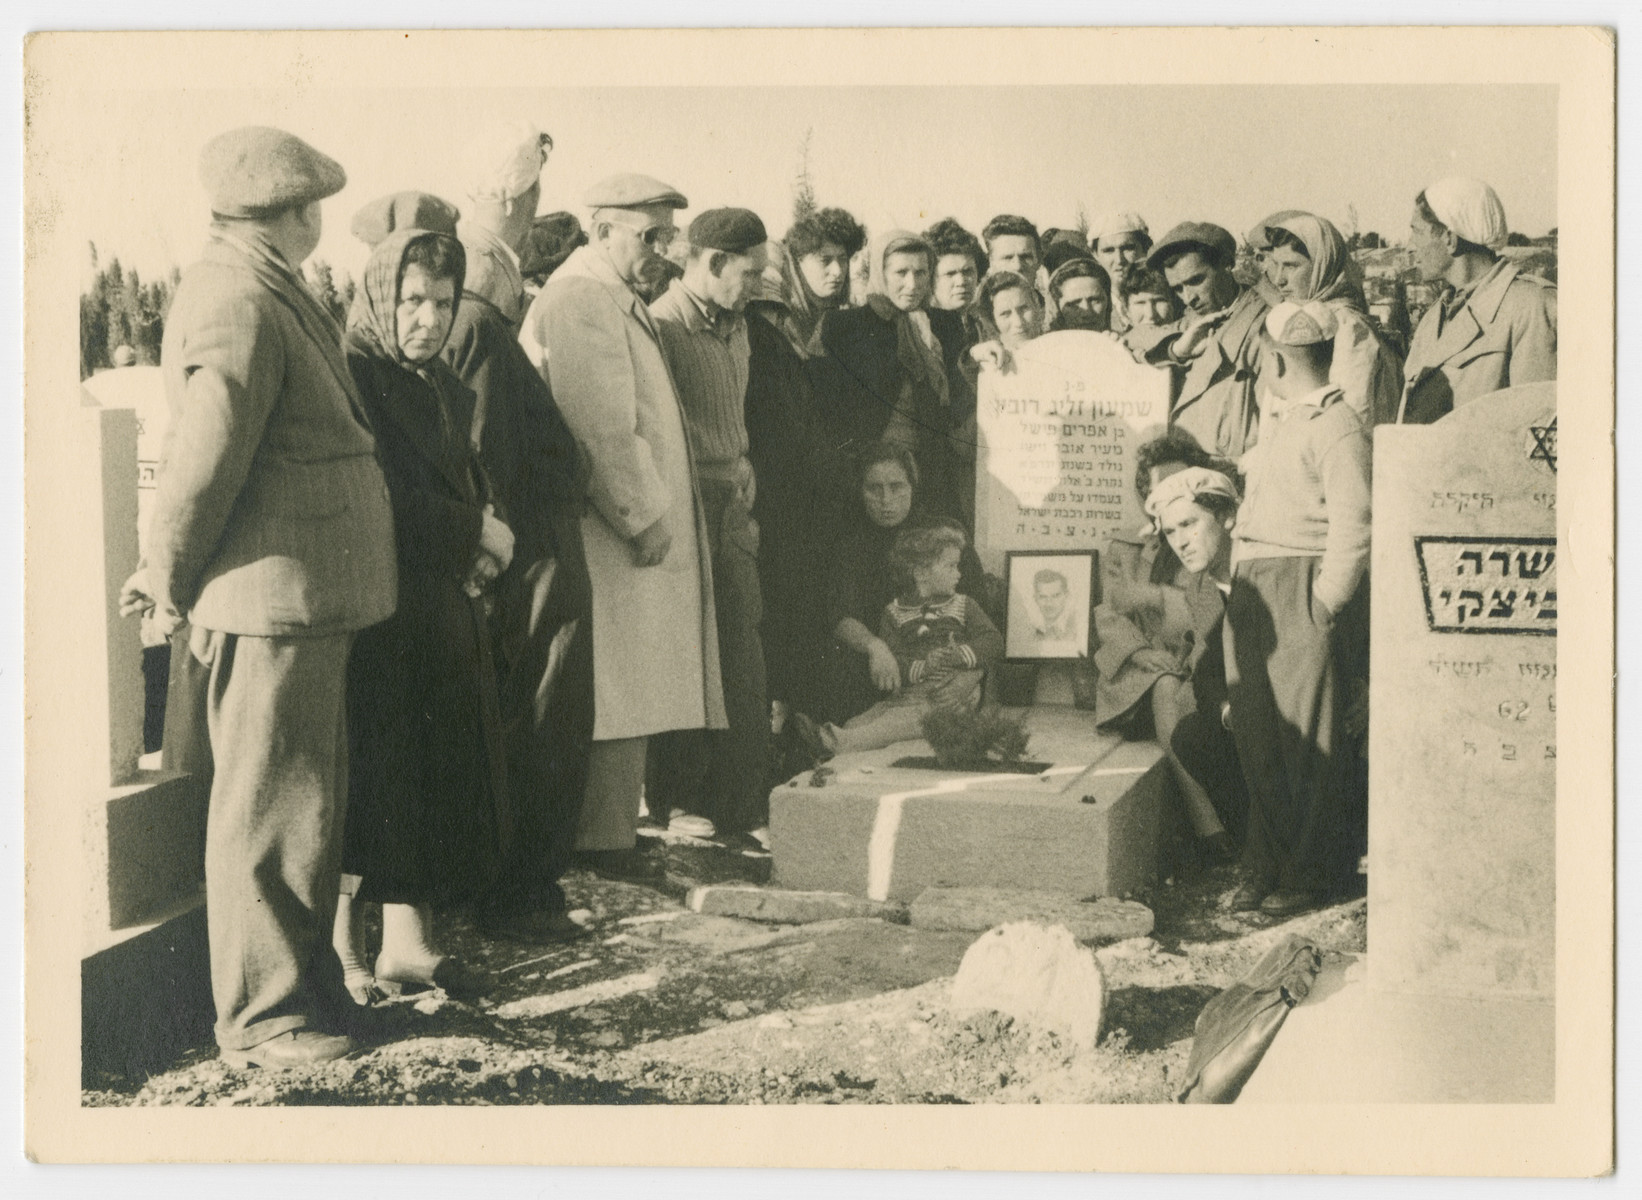 Men and women gather around a grave in a cemetery in Israel.